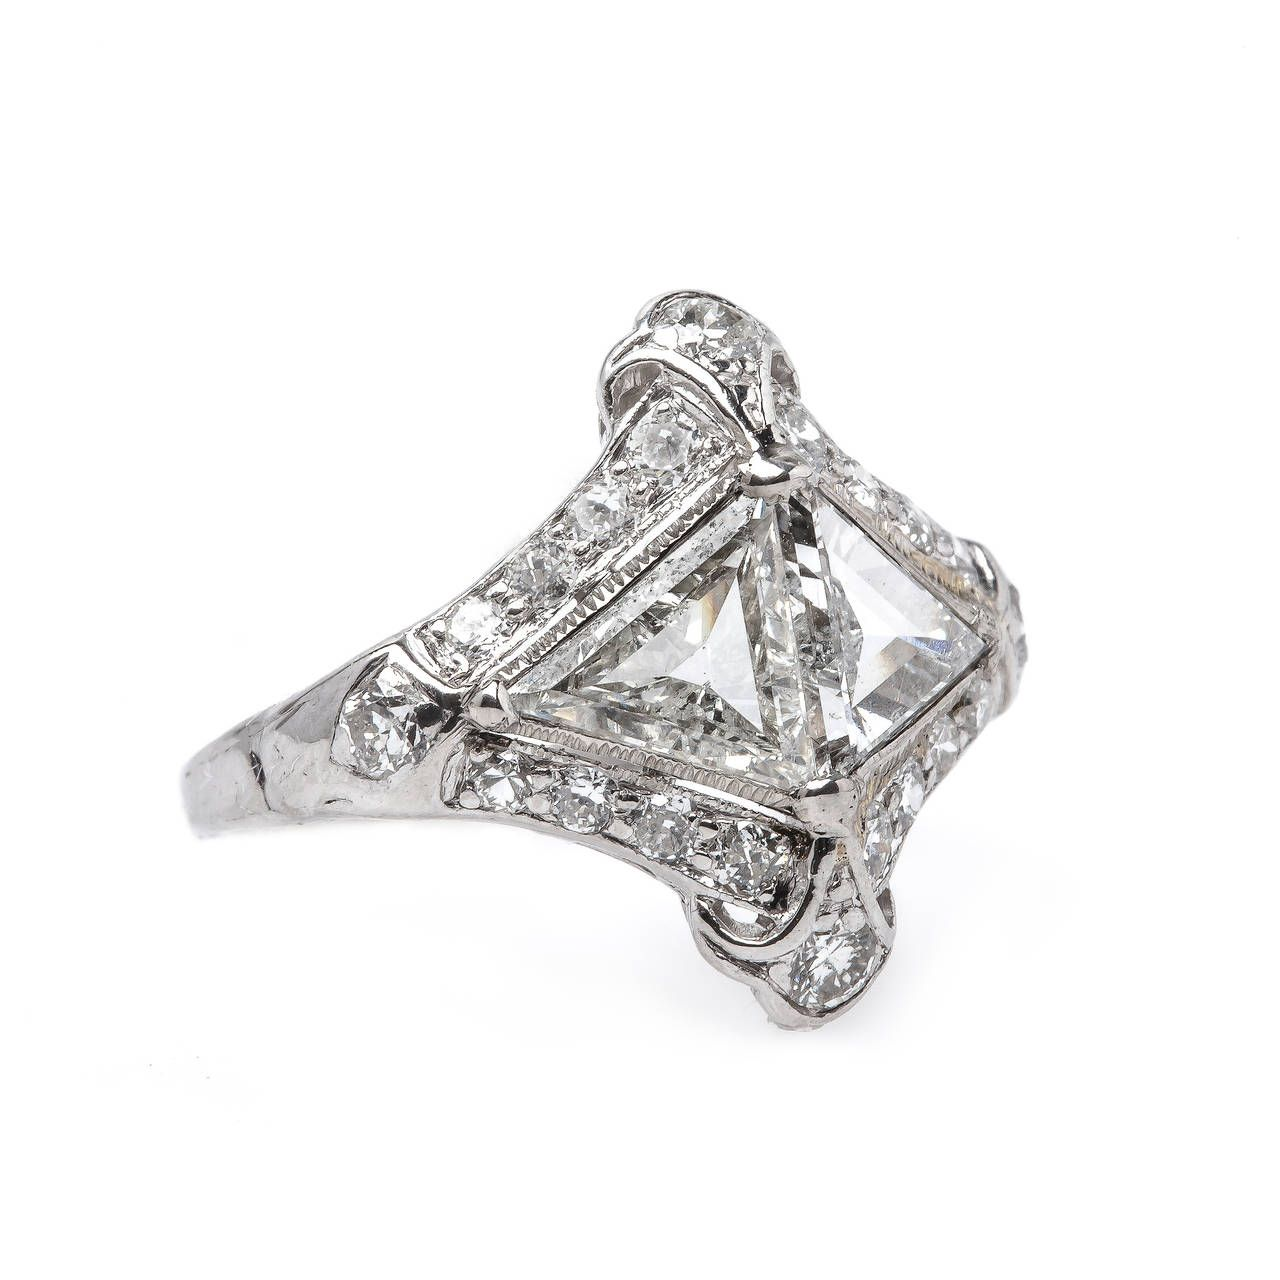 Unique Art Deco Platinum Engagement Ring with Triangular Cut Diamonds   From a unique collection of vintage engagement rings at https://www.1stdibs.com/jewelry/rings/engagement-rings/